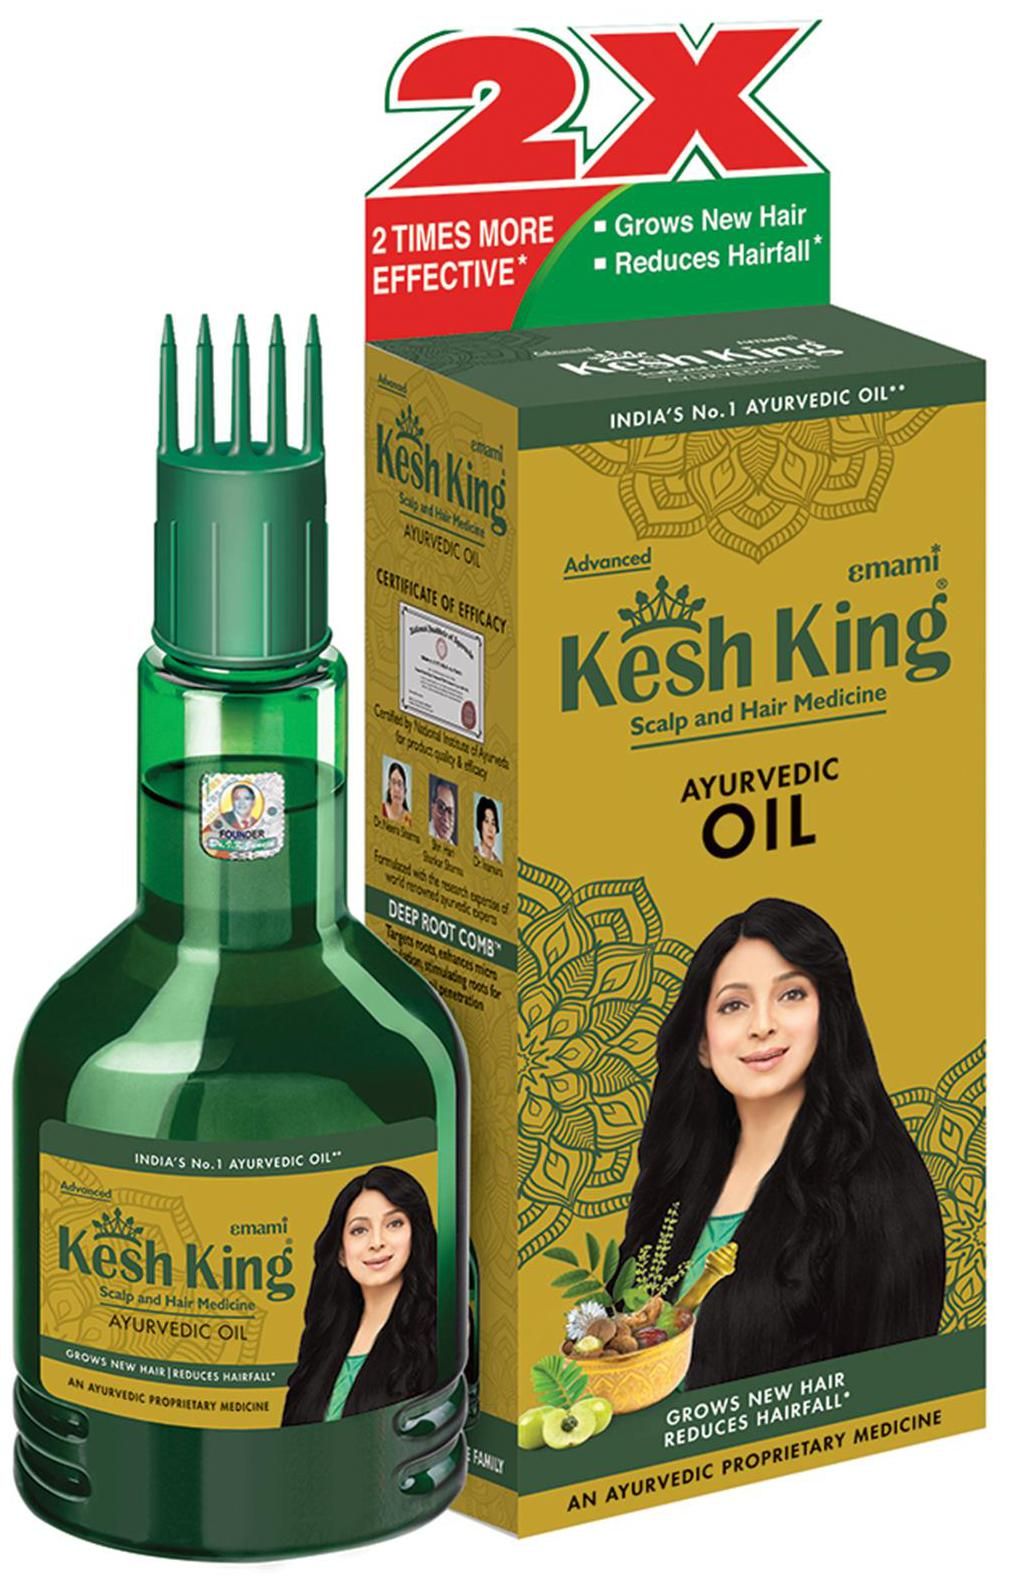 https://assetscdn1.paytm.com/images/catalog/product/F/FA/FASKESH-KING-OIZEPH70572130C871C5/a_0..jpg